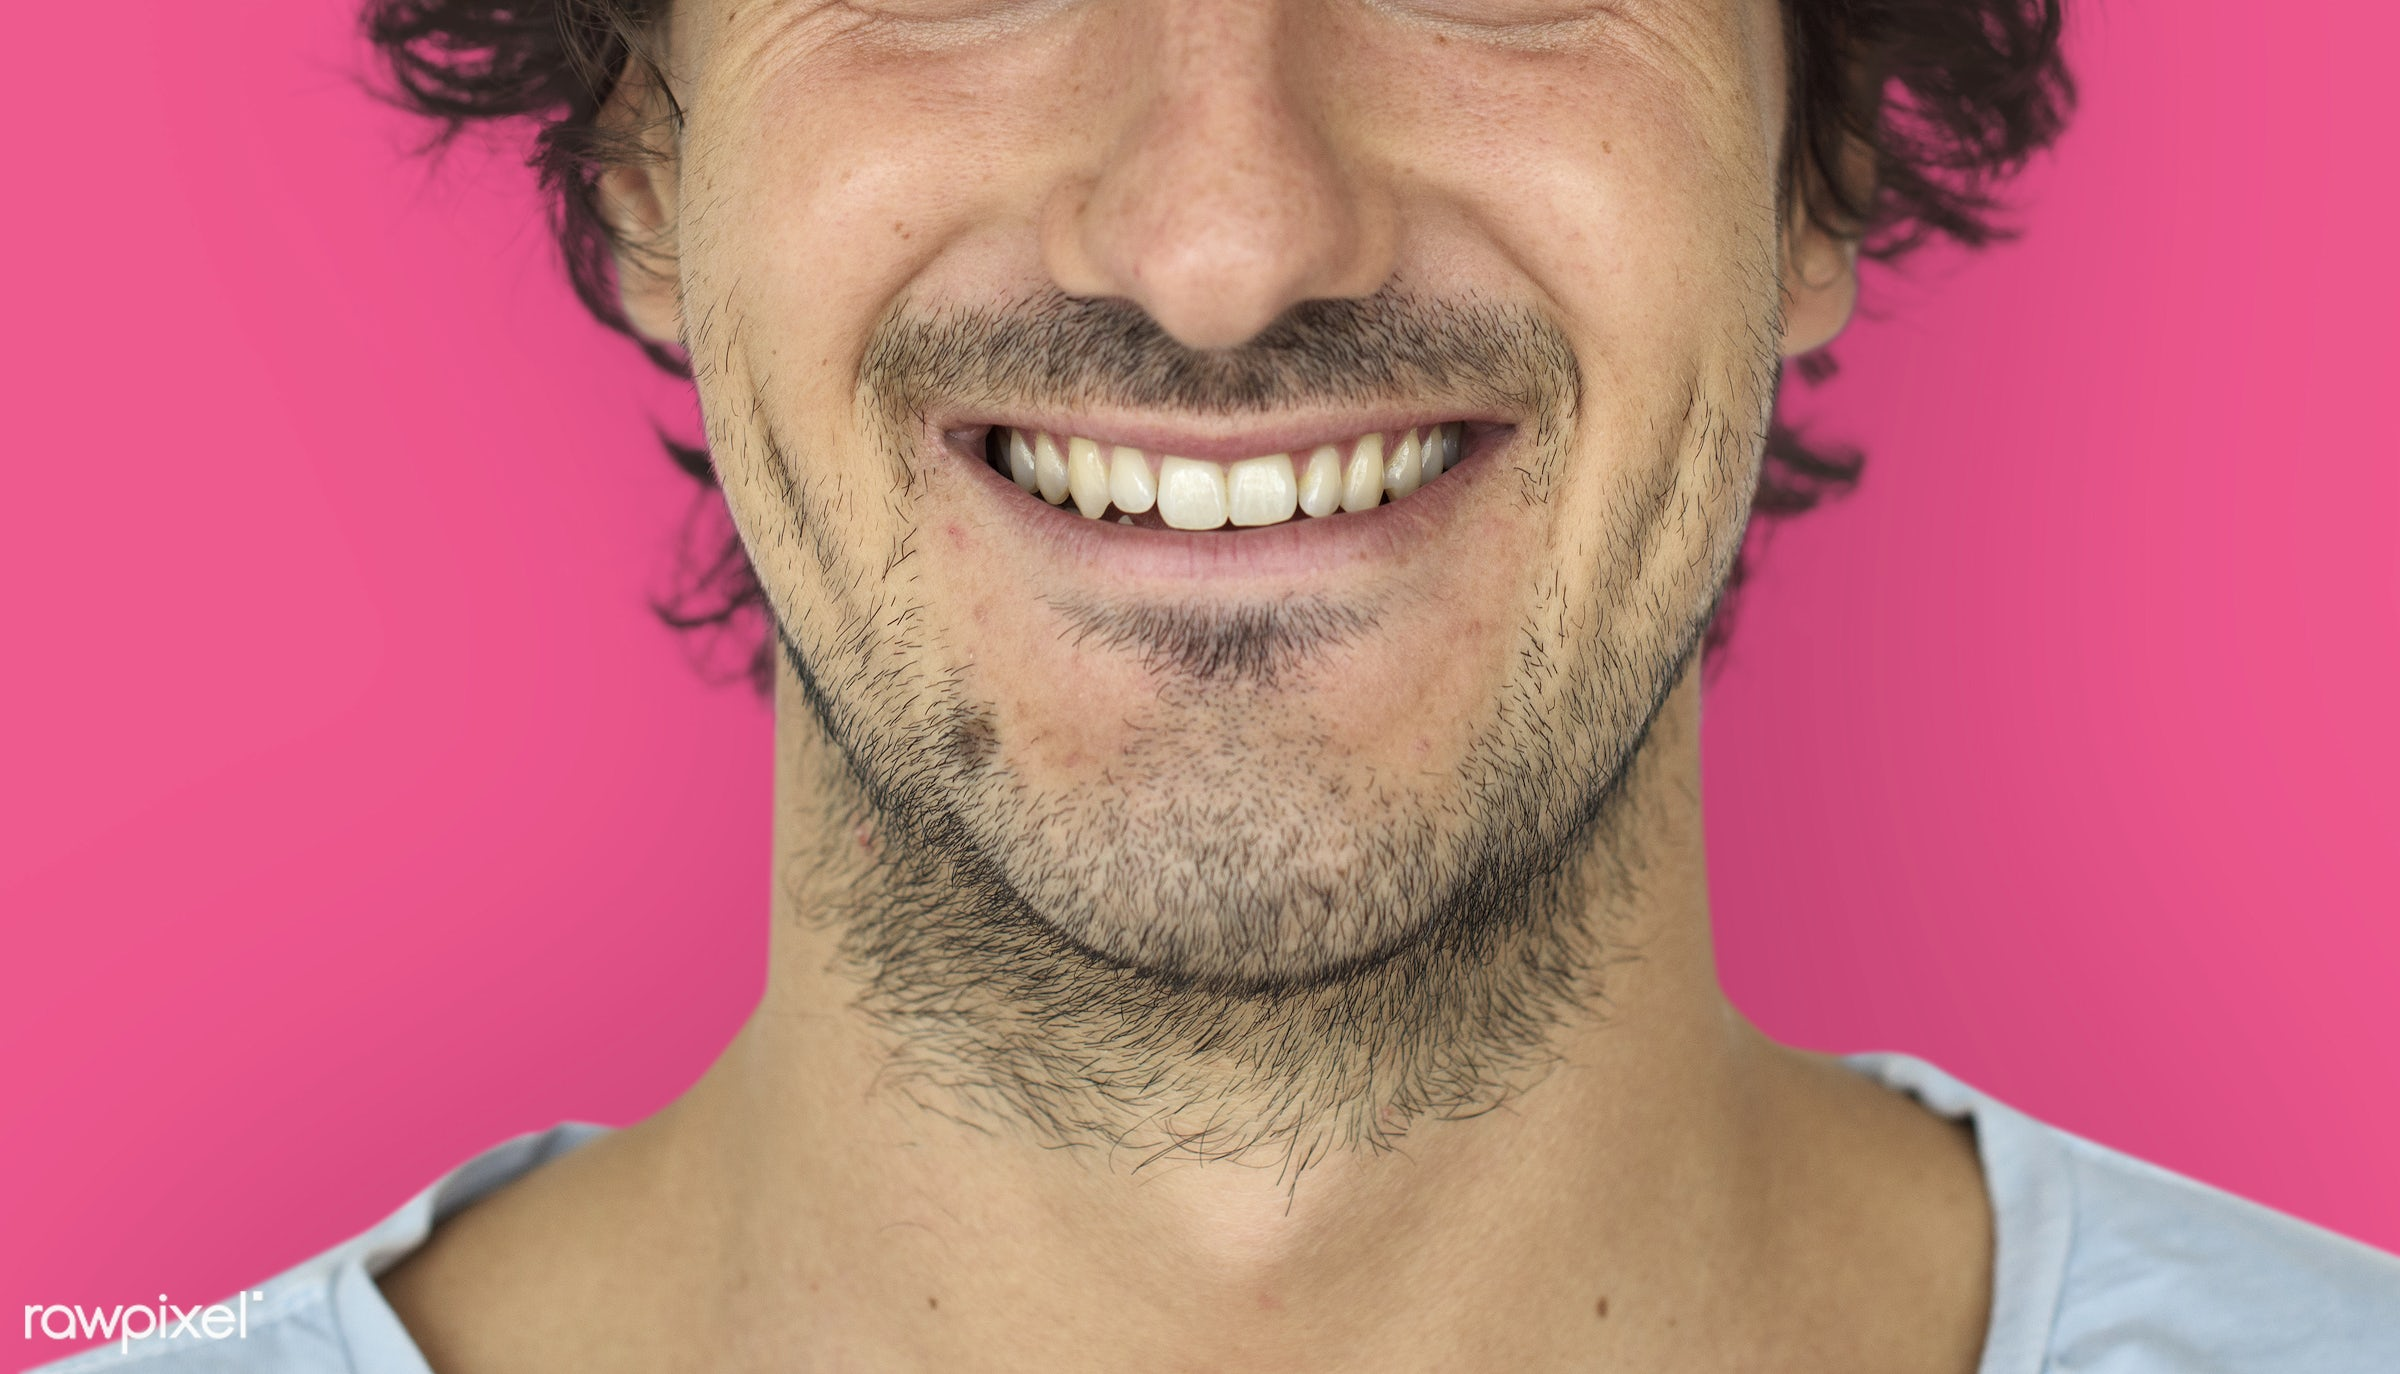 studio, expression, model, person, freedom, relax, optimistic, people, caucasian, laughing, casual, lifestyle, pink,...